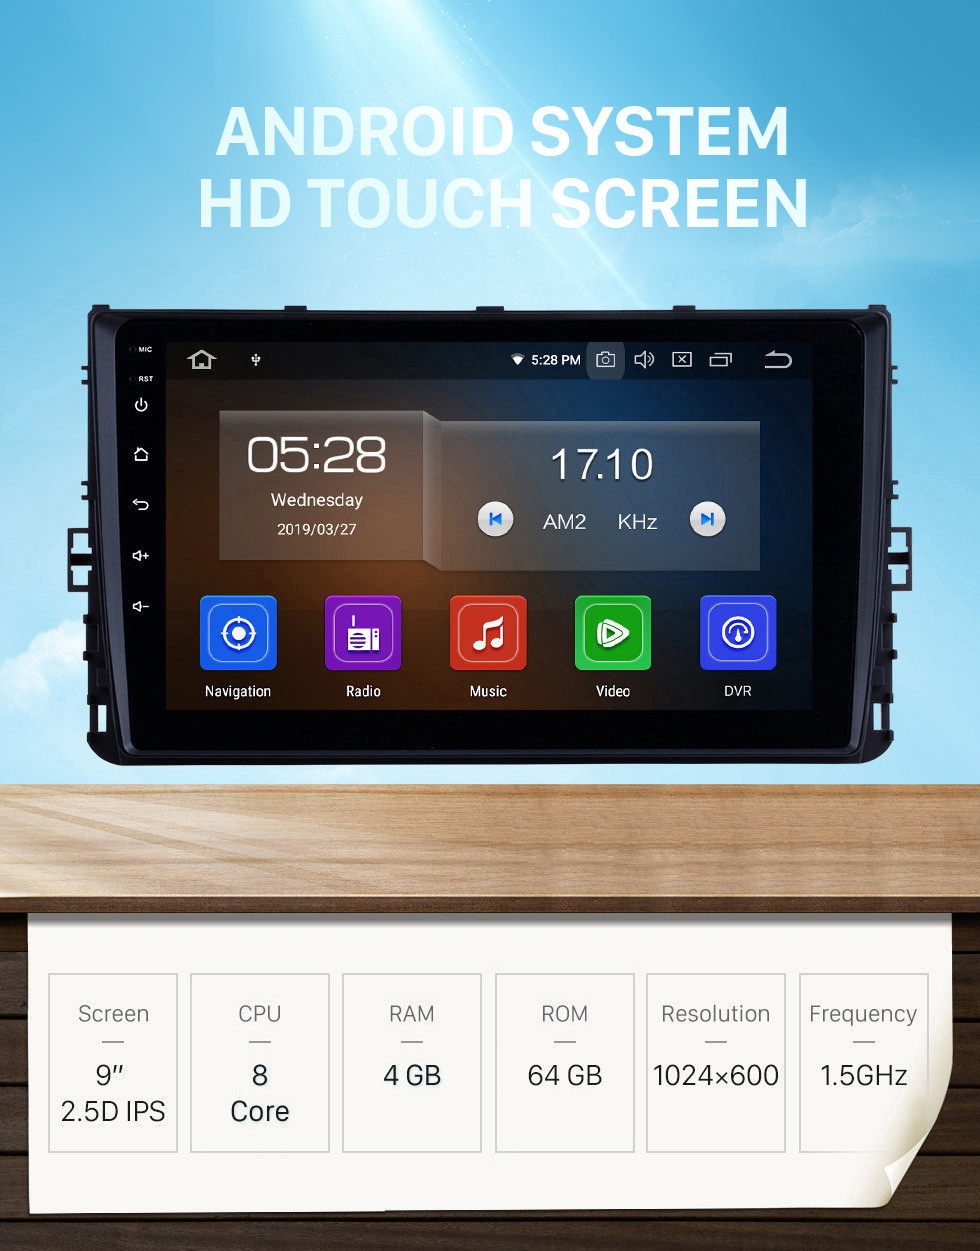 Seicane OEM 9 inch HD Touchscreen GPS navigation system Android 10.0 for 2018 VW Volkswagen Universal Support 3G/4G WiFi Radio Bluetooth Vedio Carplay Steering Remote Control